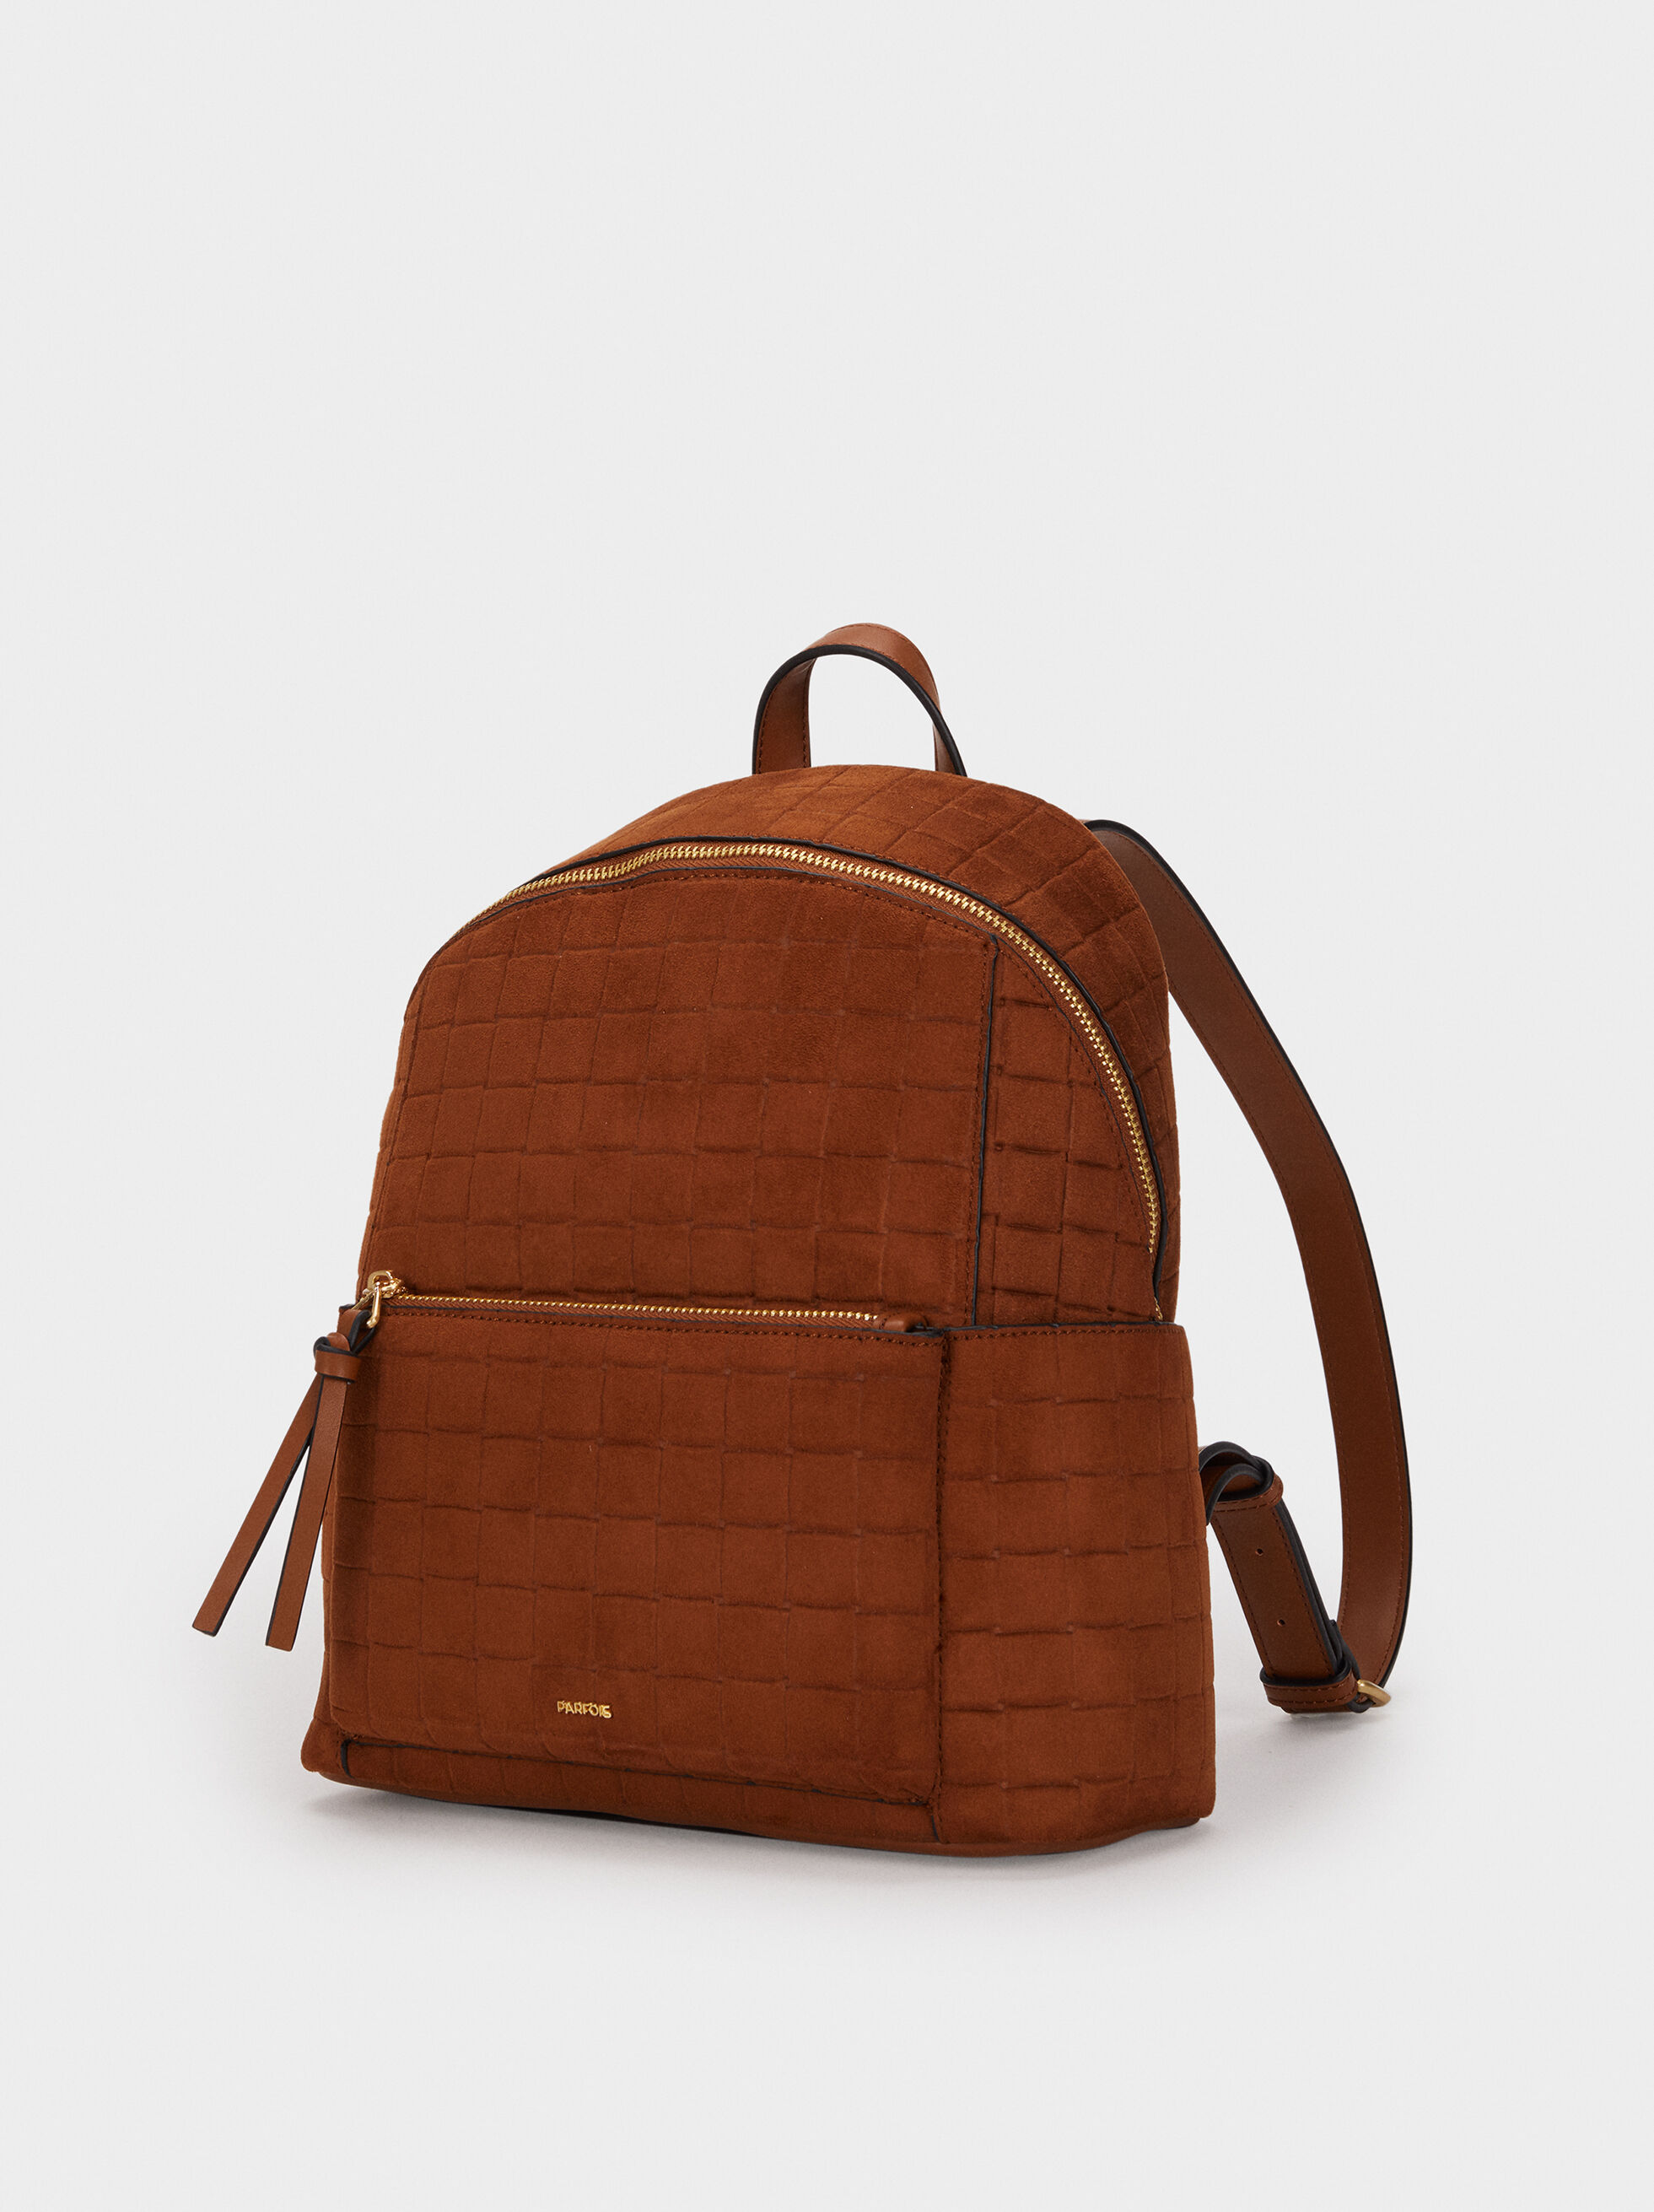 Suede Texture Backpack, Camel, hi-res